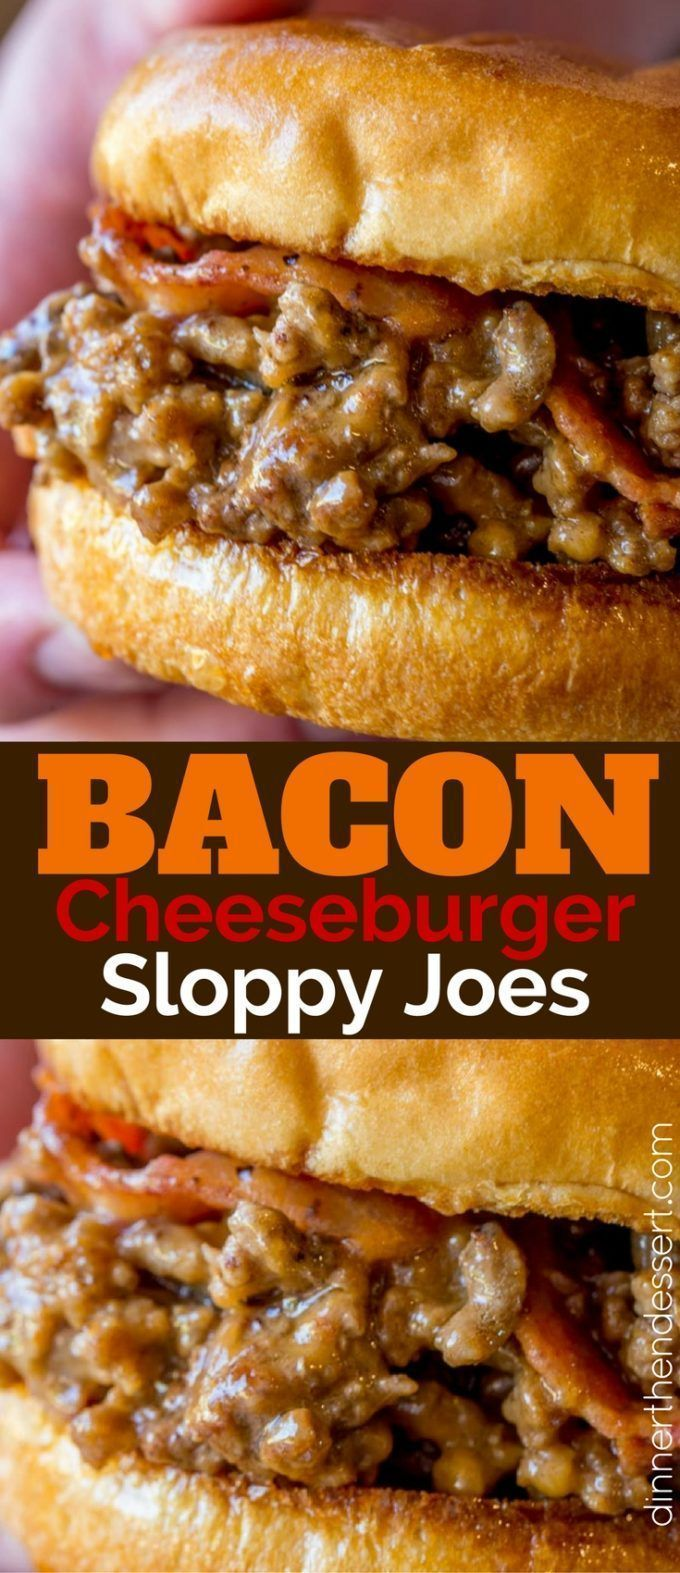 We loved these Bacon Cheeseburger Sloppy Joes so much we made them again the next day! (Beef Recipes)